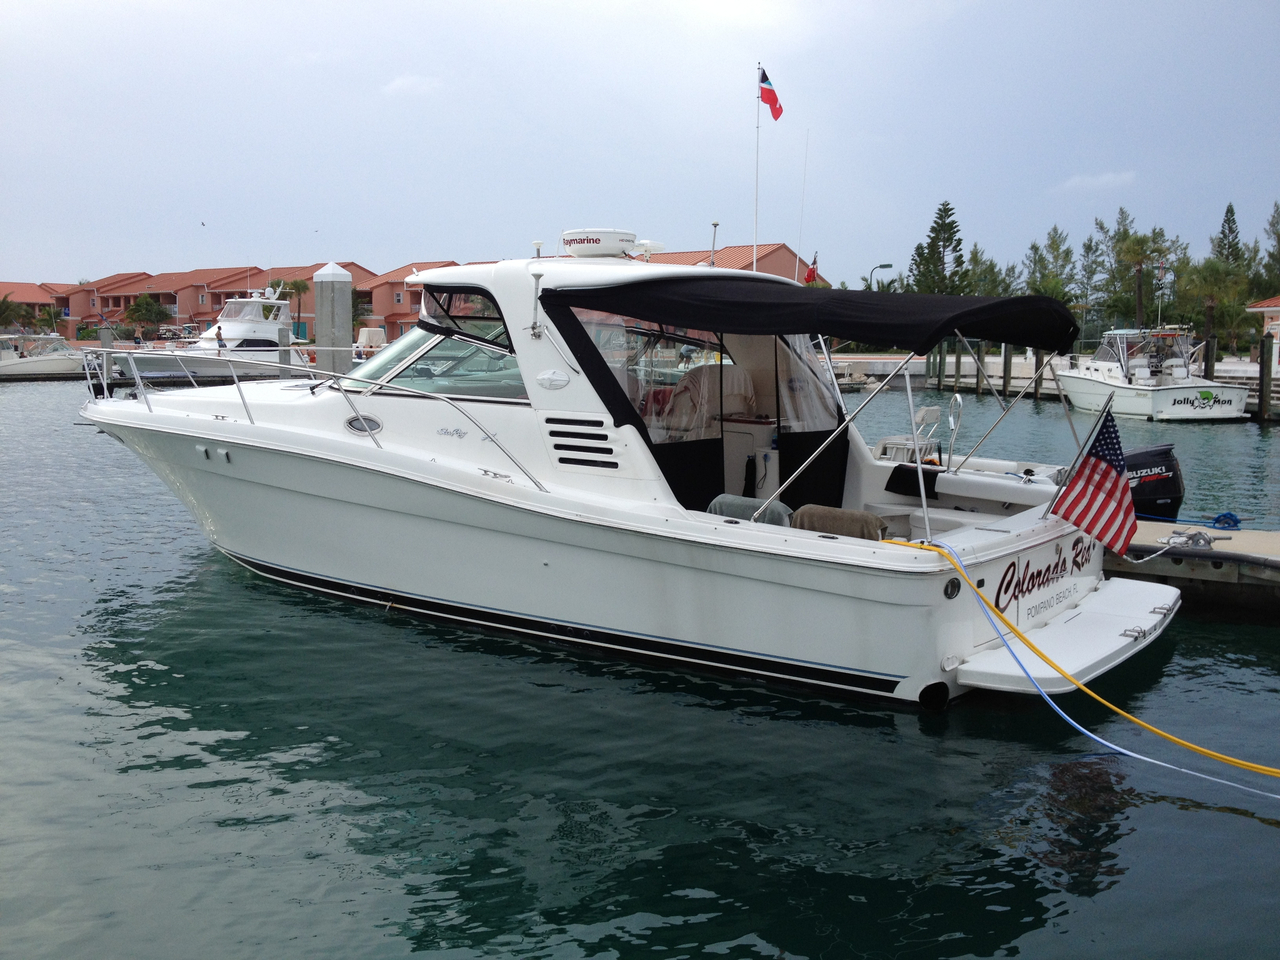 1999 used sea ray ec sports fishing boat for sale for Sport fishing boats for sale